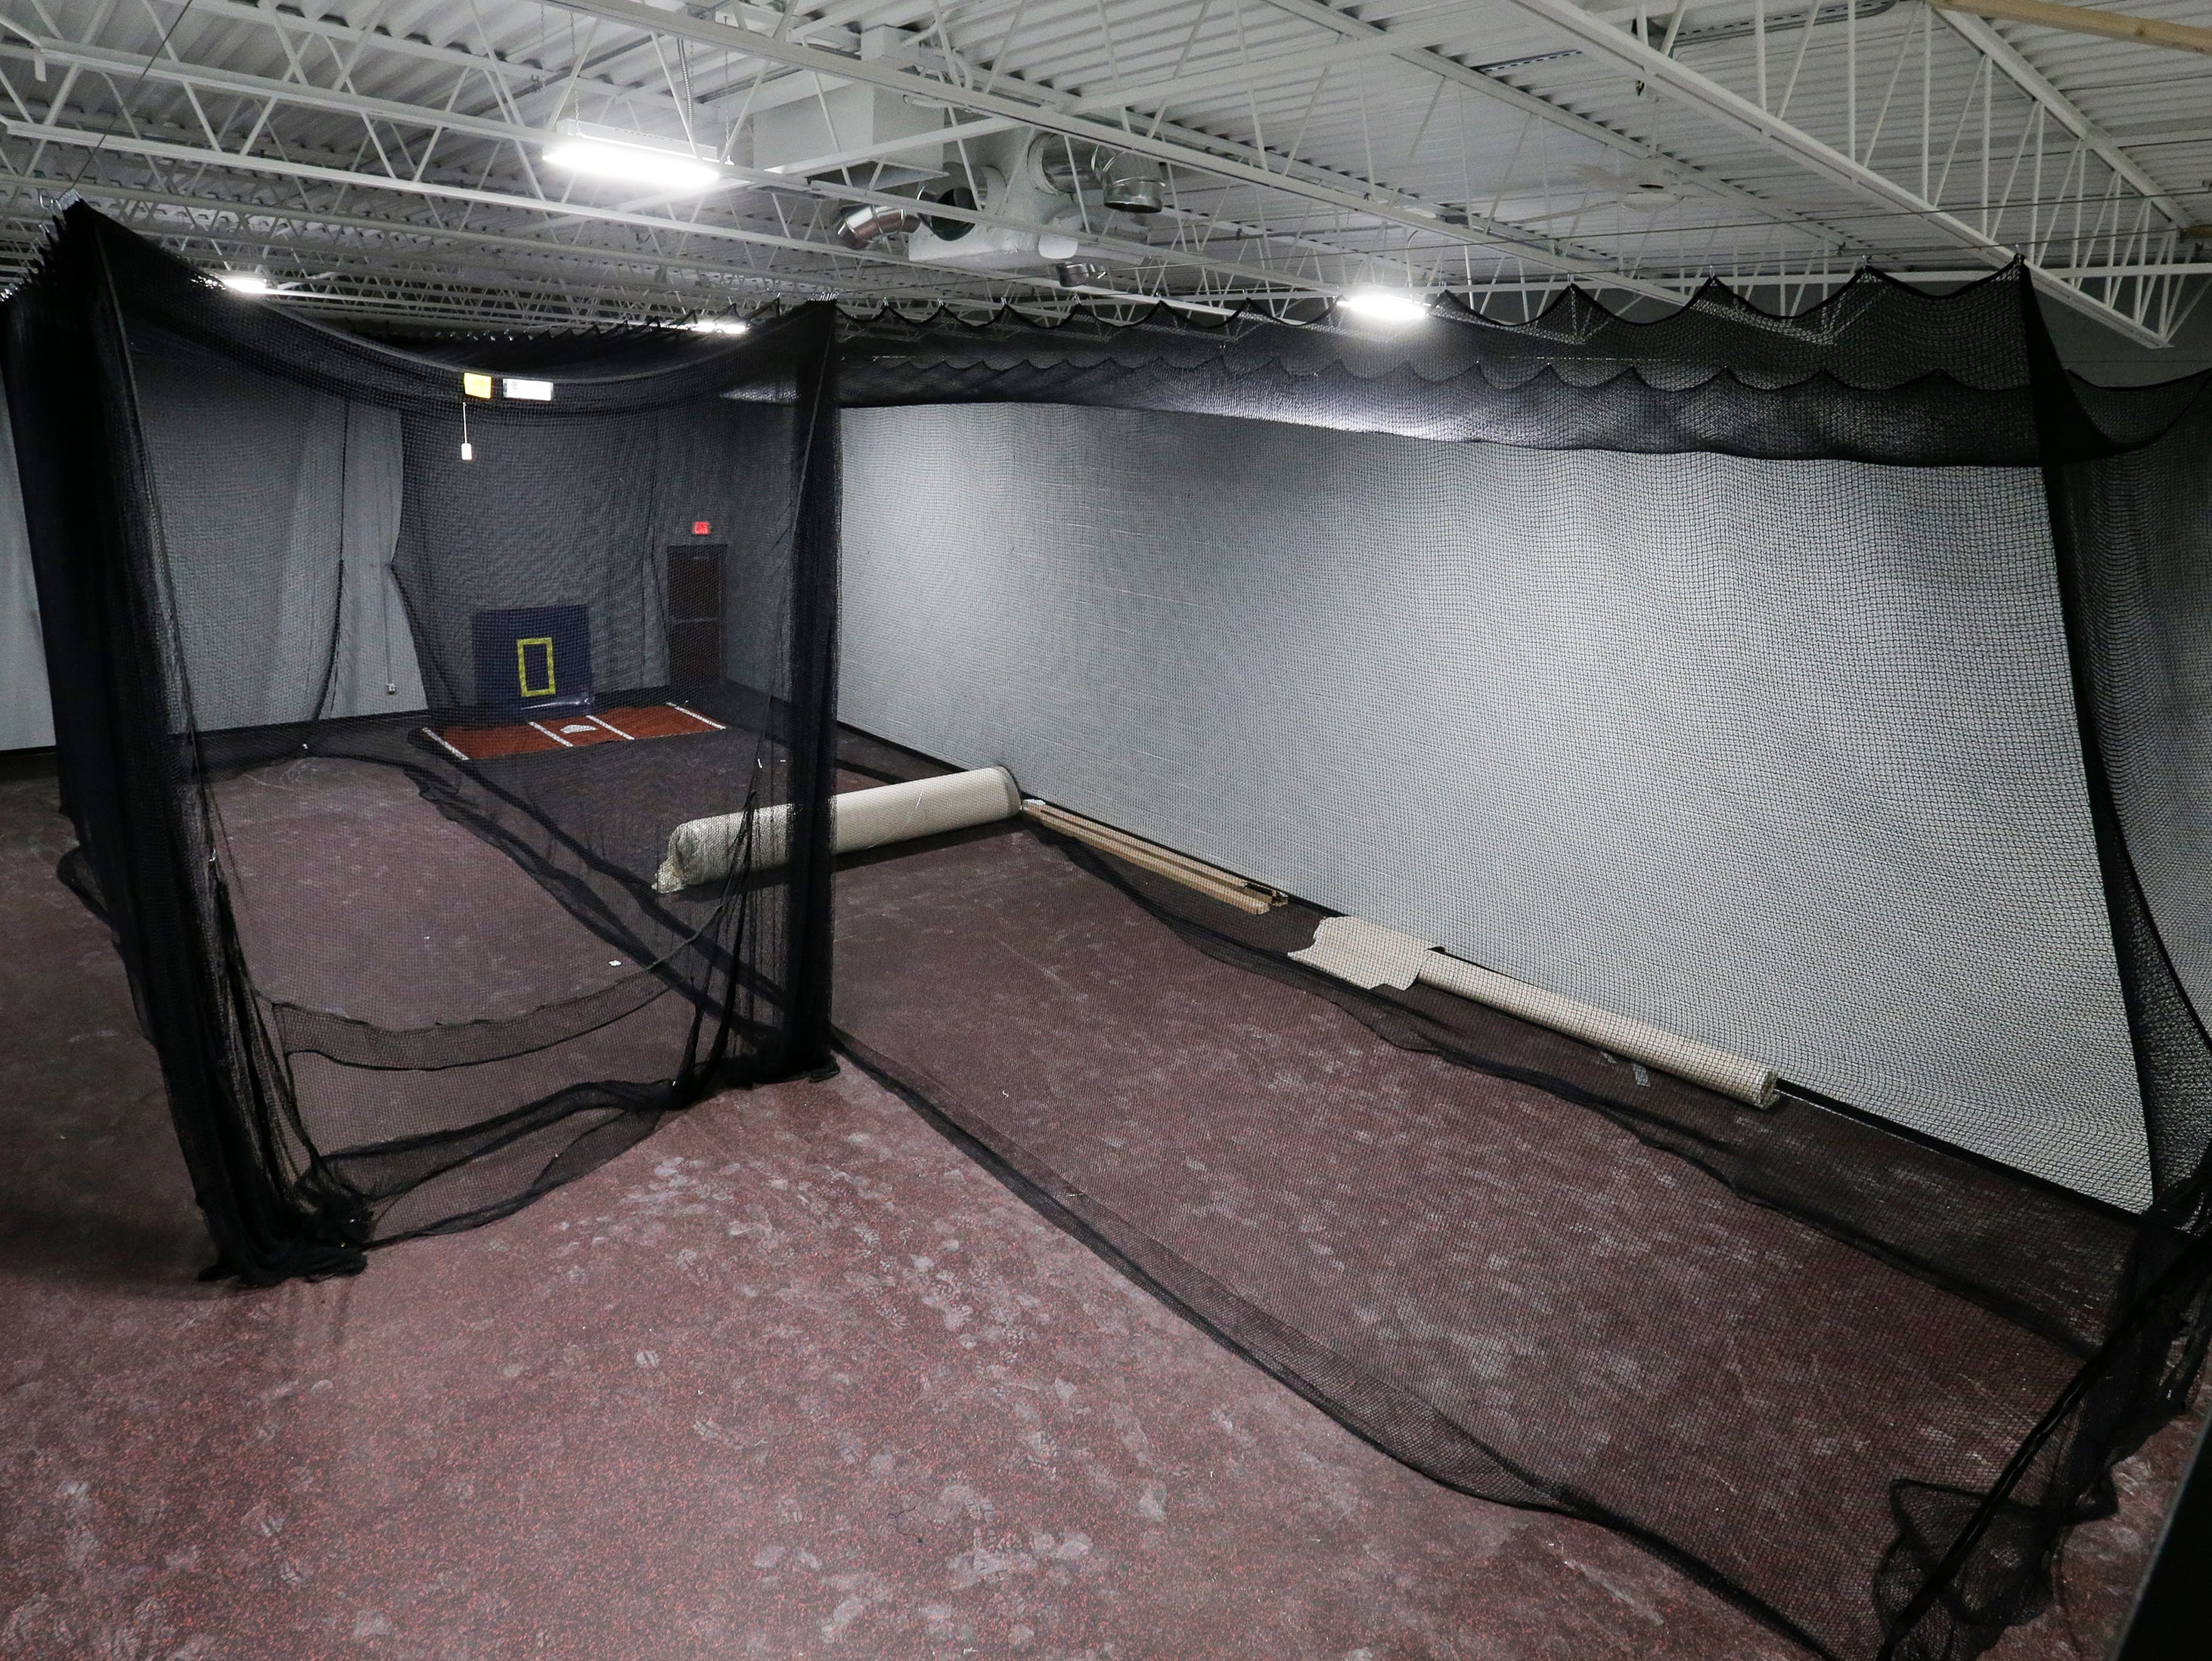 The batting cages at Strand Adventures Wednesday, May 1, 2019, in Manitowoc, Wis. The cages can also be removed to create an open event space. Joshua Clark/USA TODAY NETWORK-Wisconsin